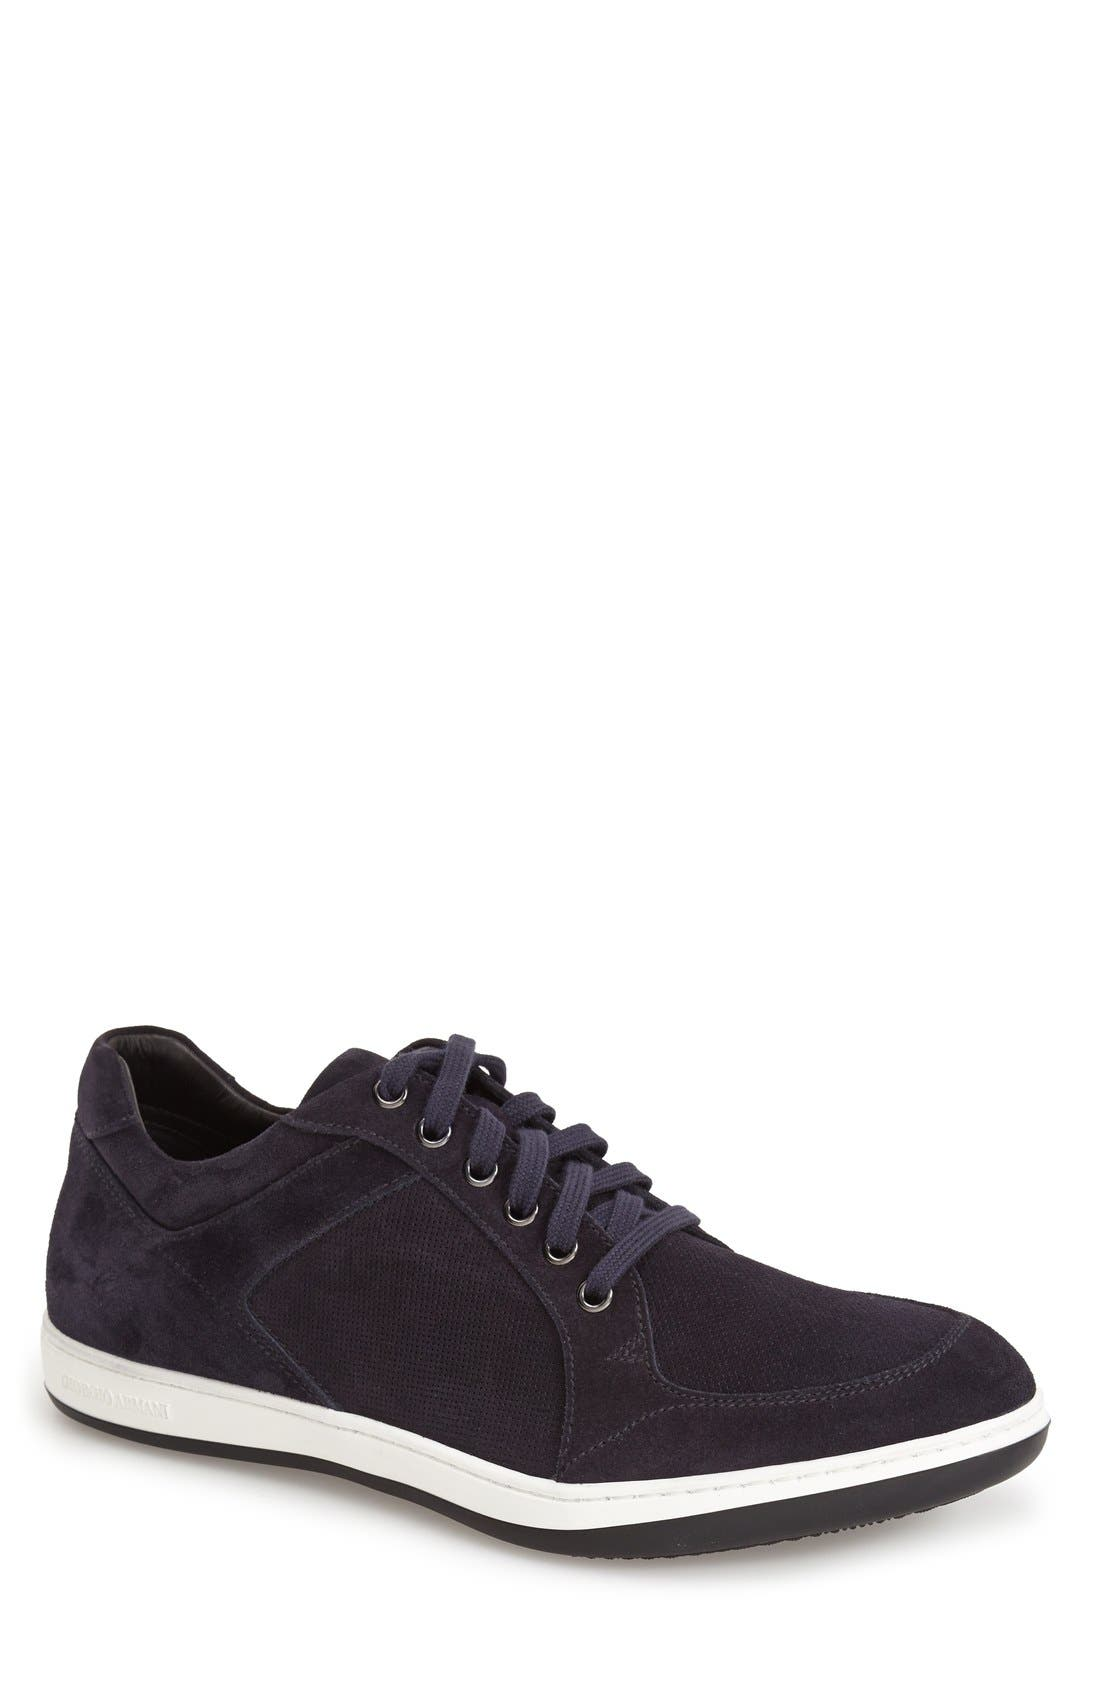 Alternate Image 1 Selected - Giorgio Armani Perforated Suede Sneaker (Men)